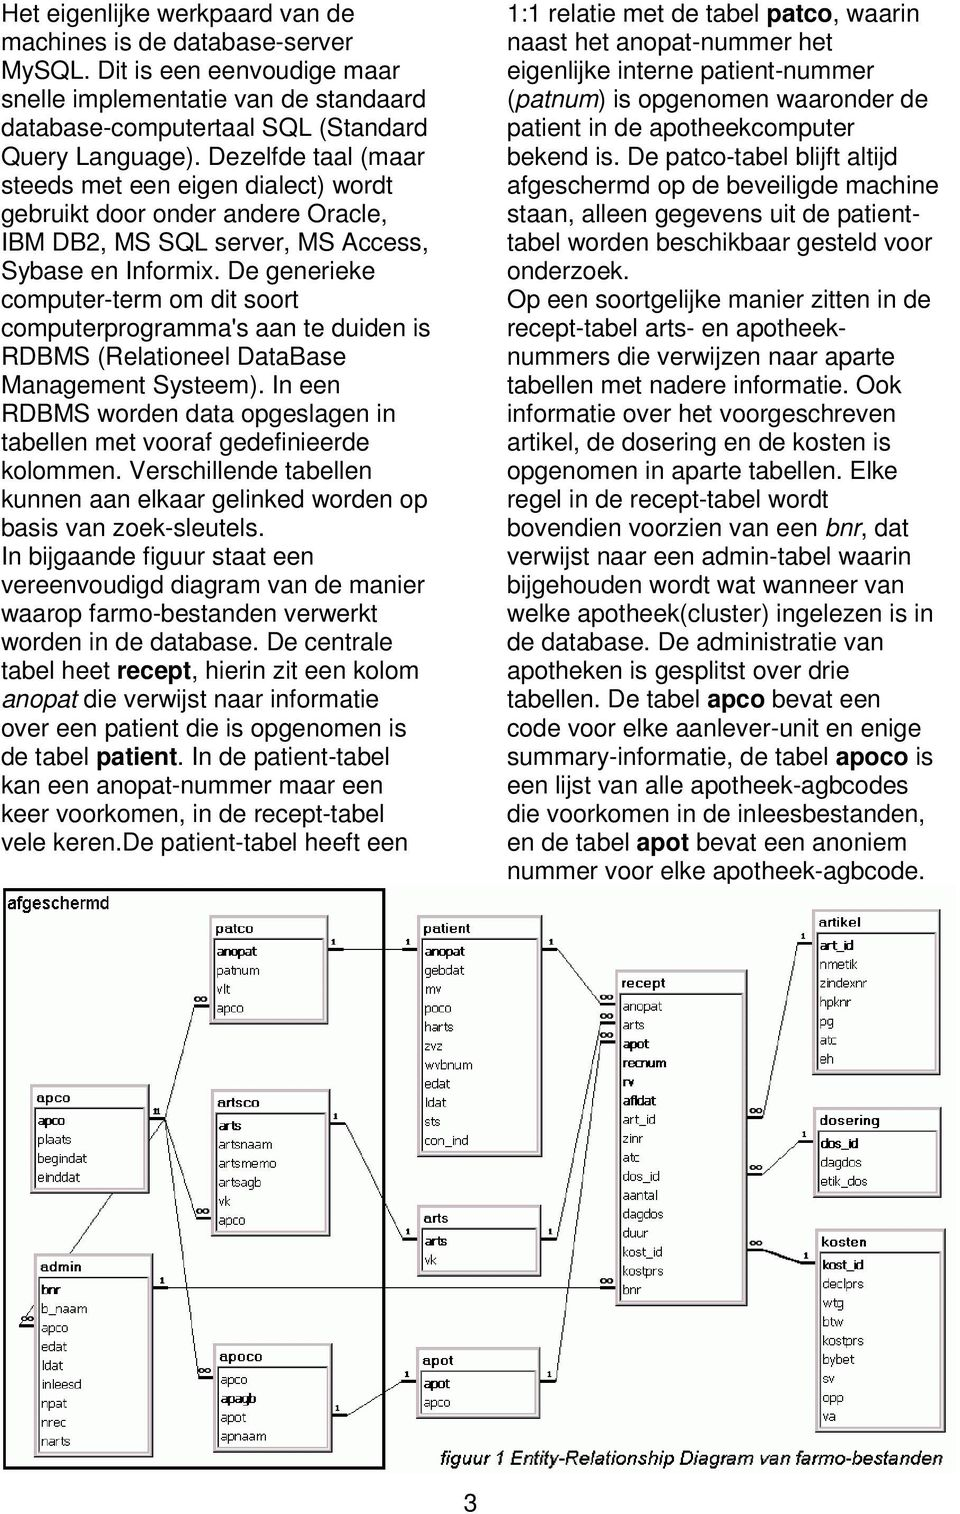 De generieke computer-term om dit soort computerprogramma's aan te duiden is RDBMS (Relationeel DataBase Management Systeem).